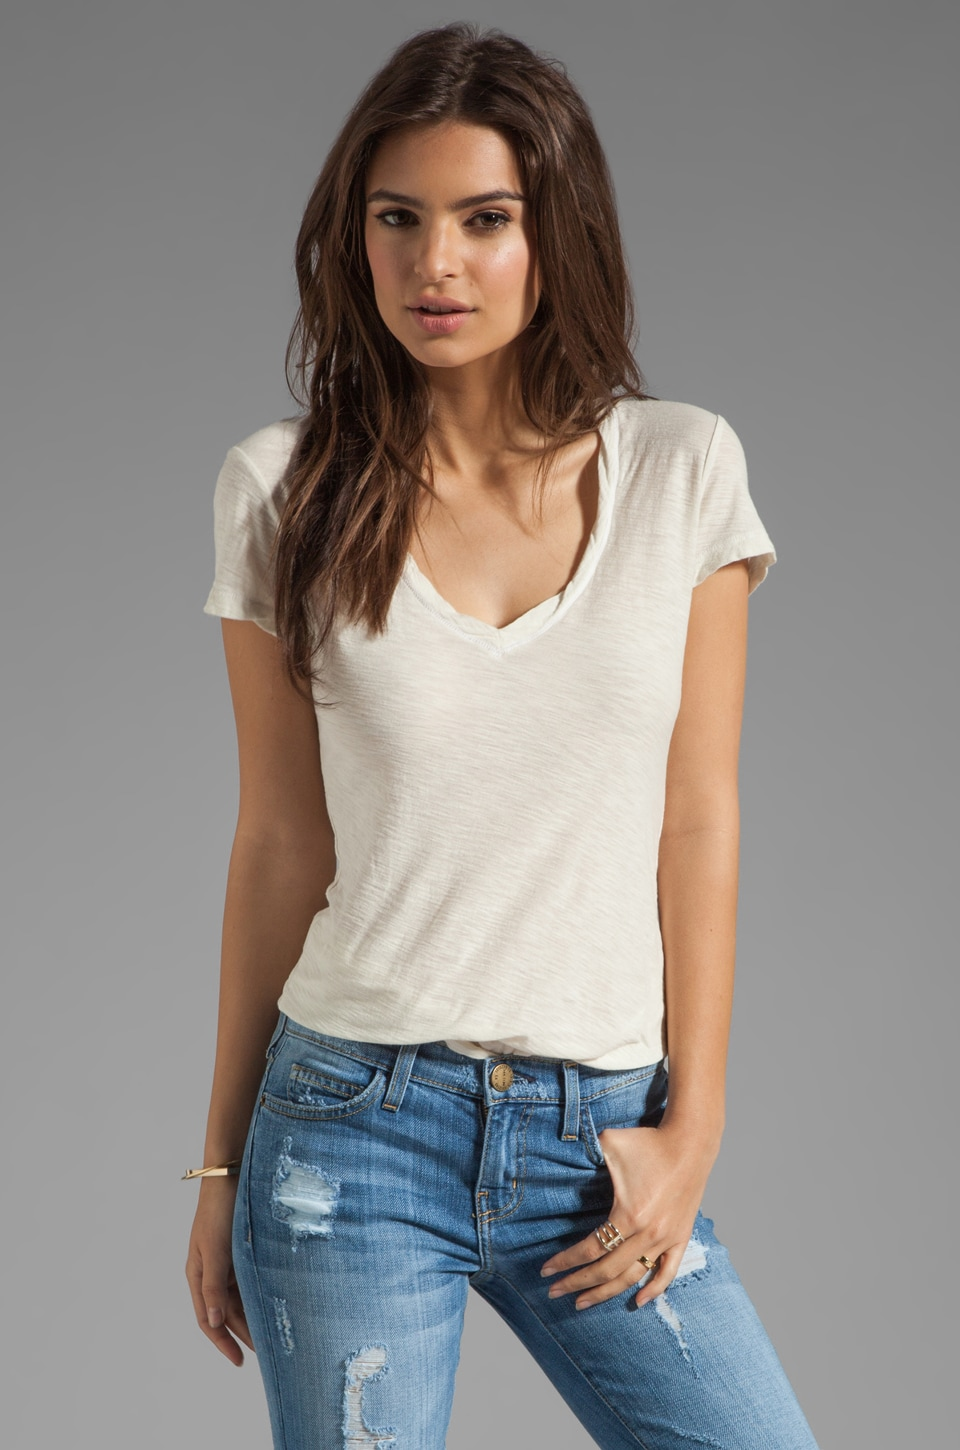 James Perse Casual Tee in Stone